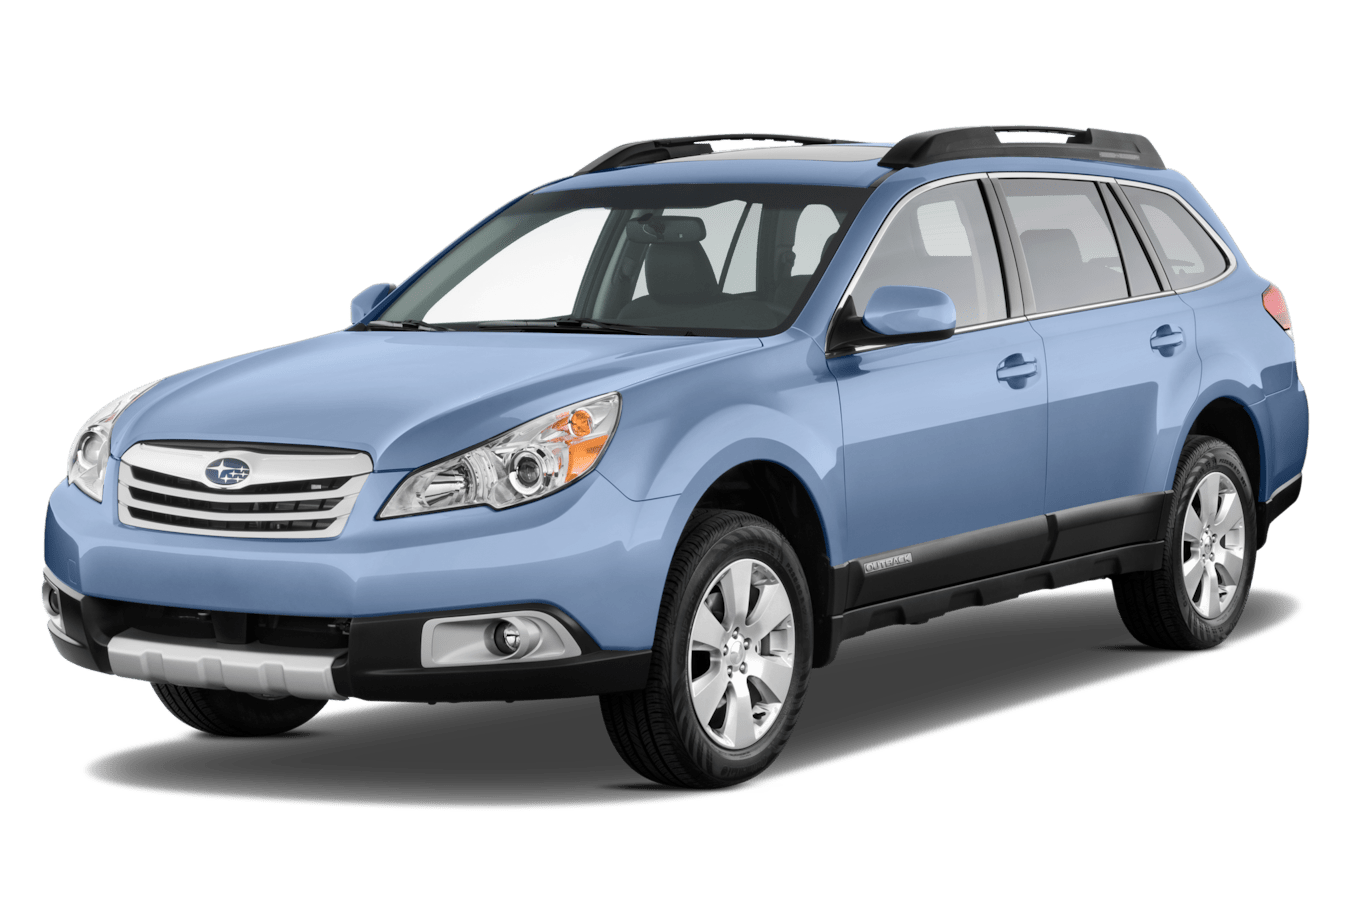 small resolution of 2010 subaru outback reviews research outback prices specs 2 5 subaru h4 engine diagram